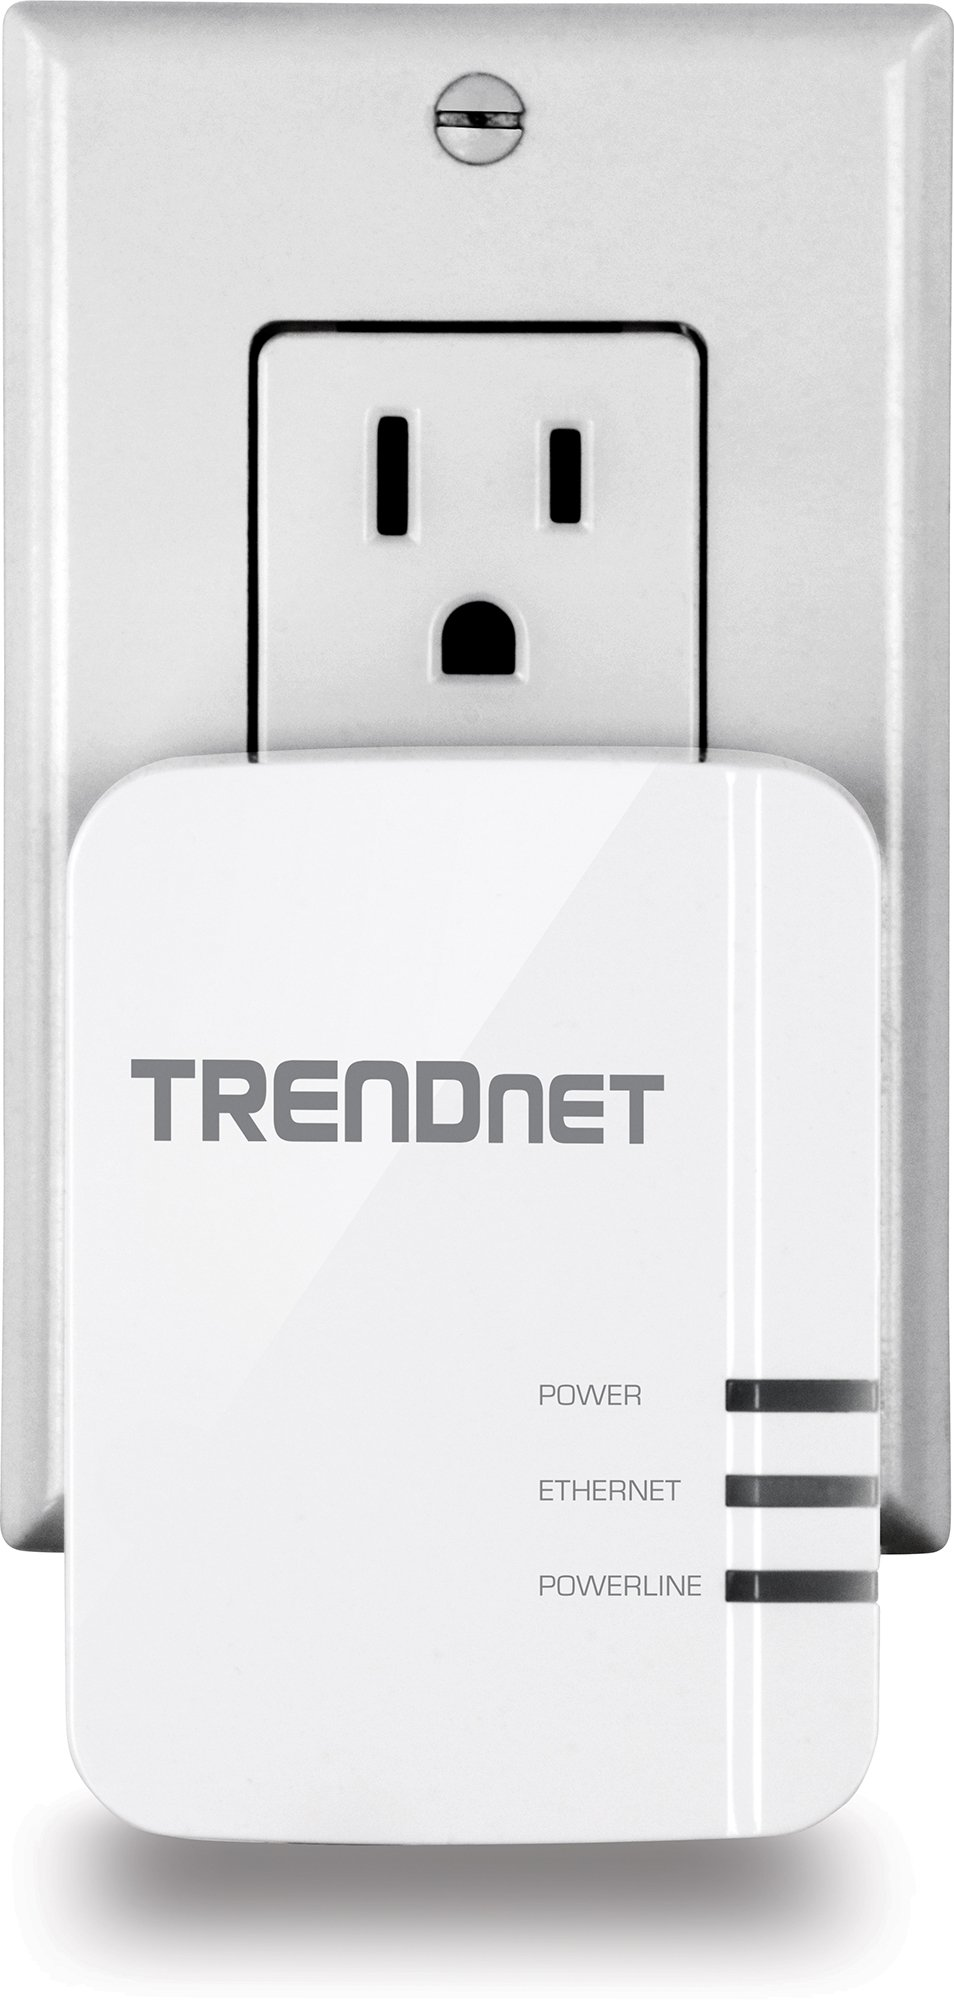 TRENDnet Powerline 1200 AV2 Single Adapter with Gigabit Port, Plug and Play, MIMO, Beamforming, TPL-420E by TRENDnet (Image #5)